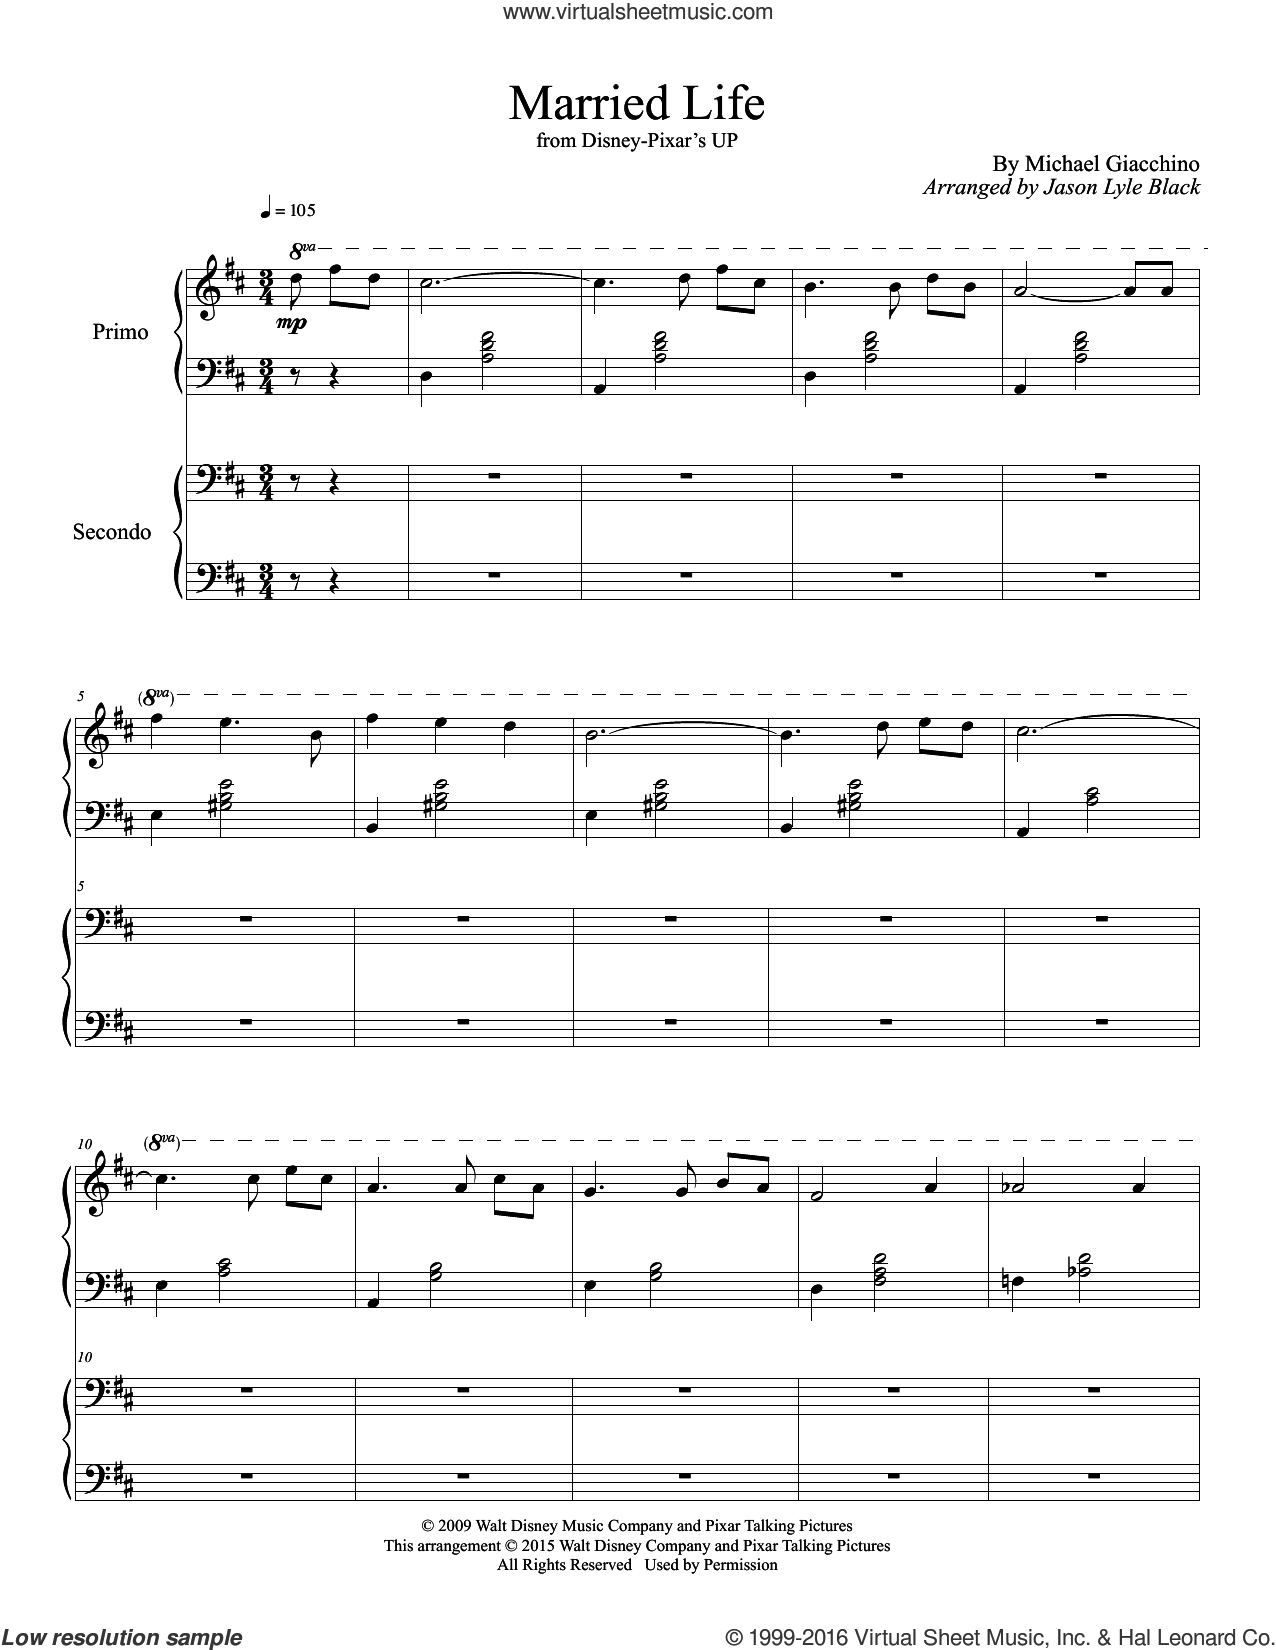 Married Life sheet music for piano four hands by Michael Giacchino and Jason Lyle Black, intermediate skill level